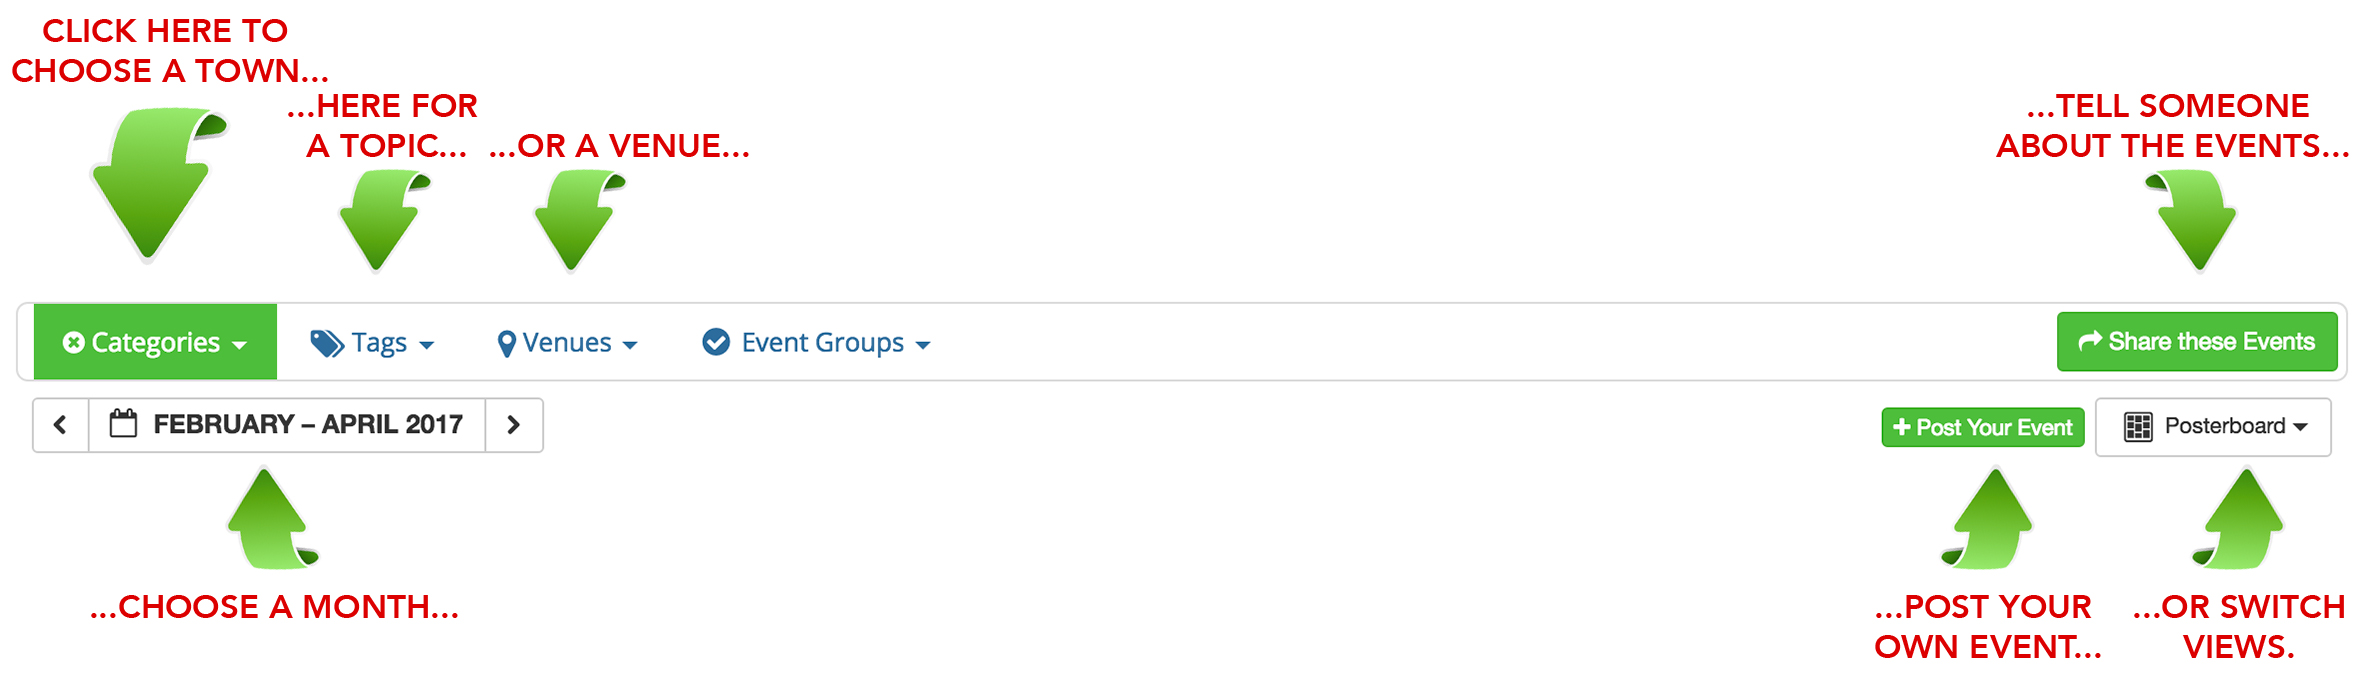 events calendar show low chamber of commerce